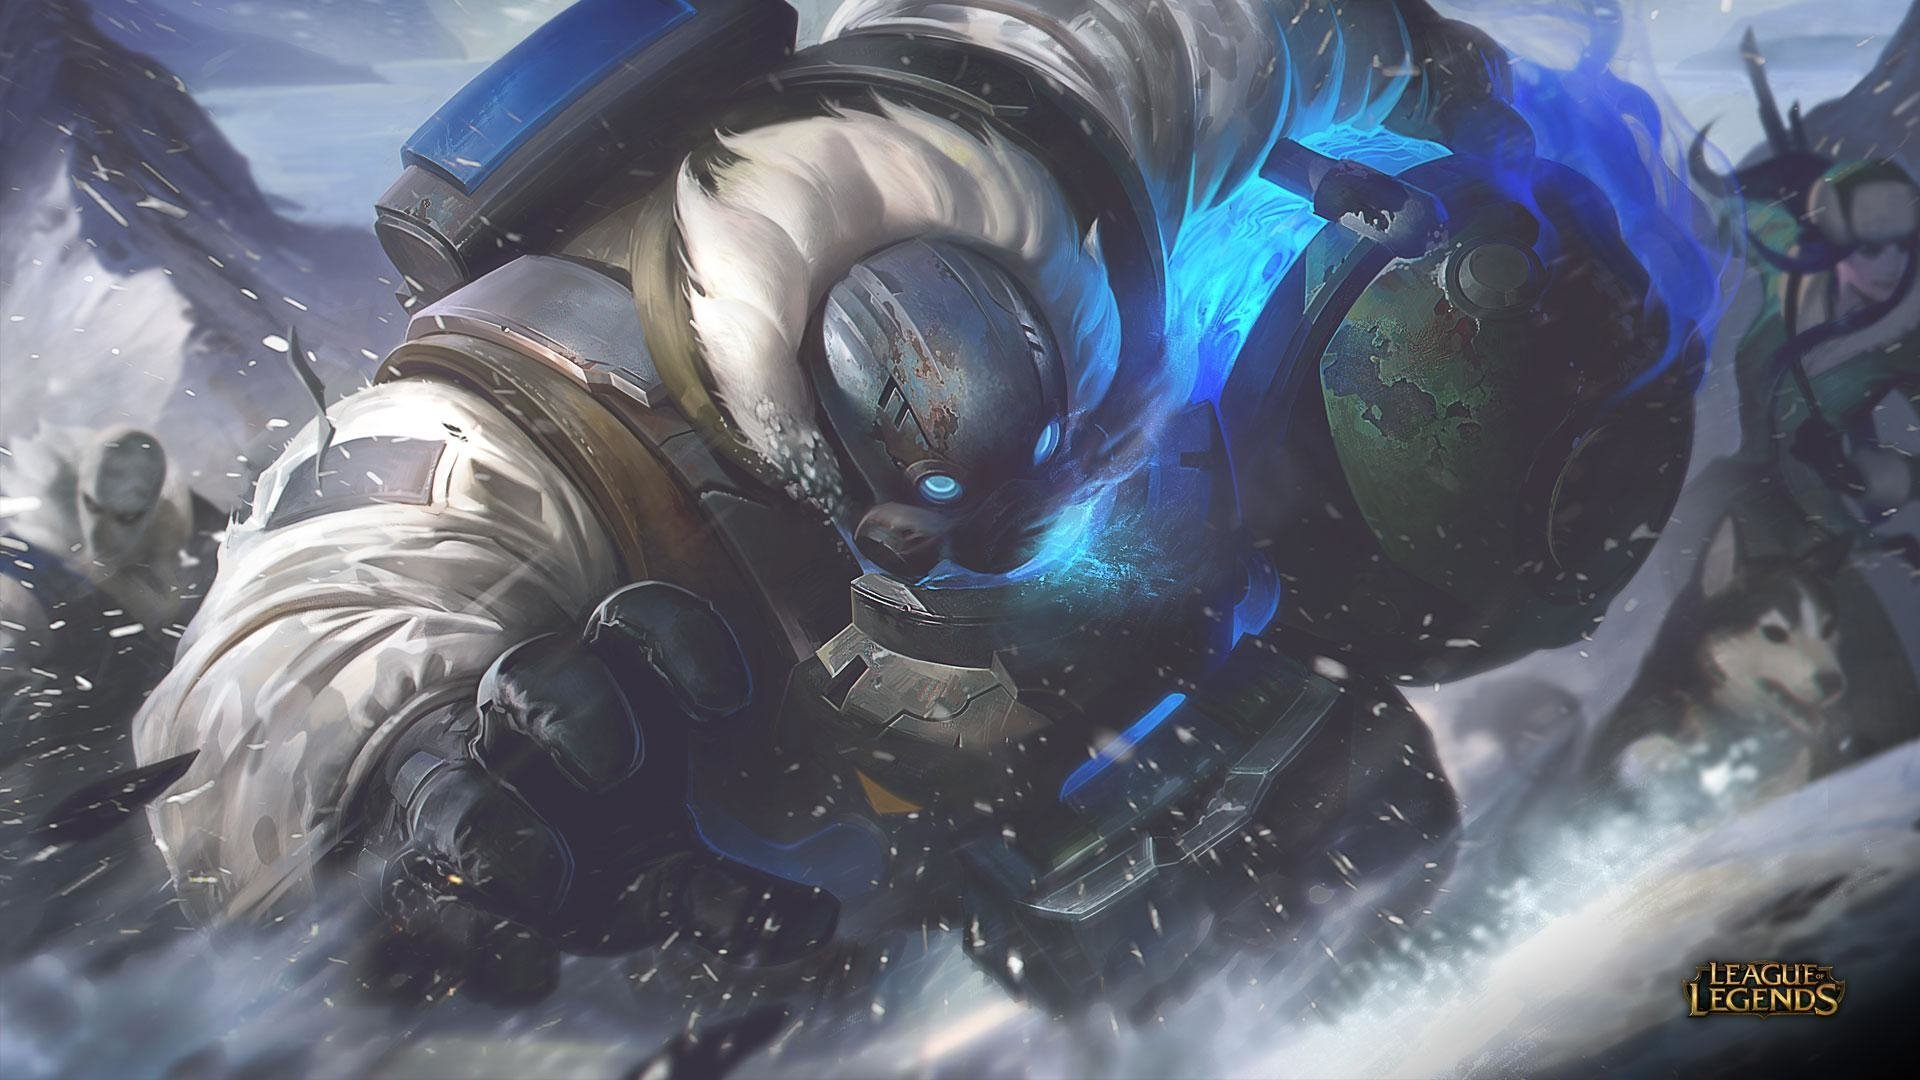 15 Gragas League Of Legends HD Wallpapers Background Images 1920x1080